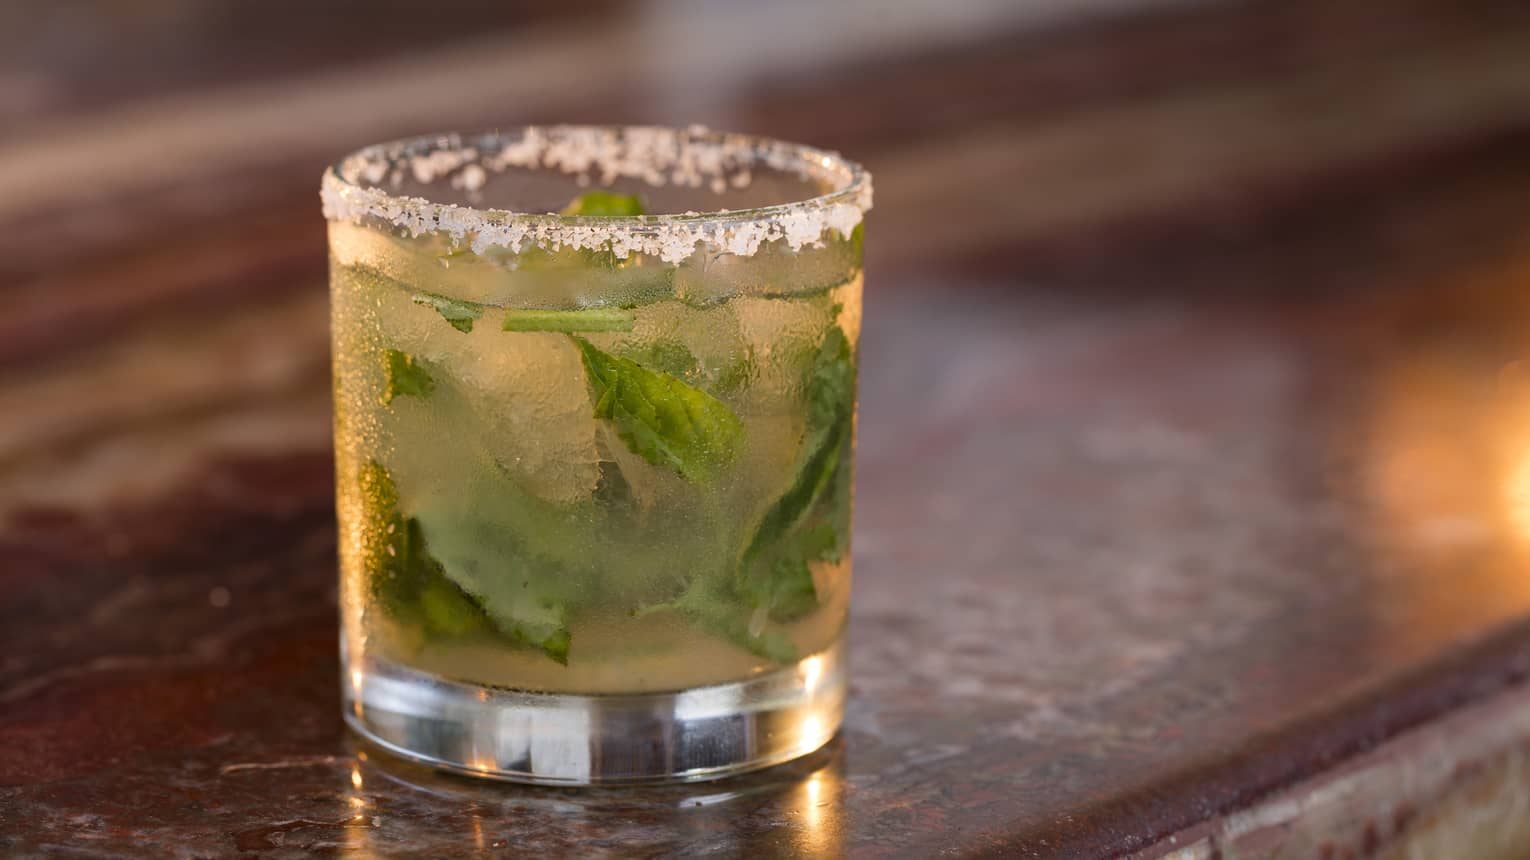 Cocktail with muddled mint leaves, salt rim around rock glass in bar